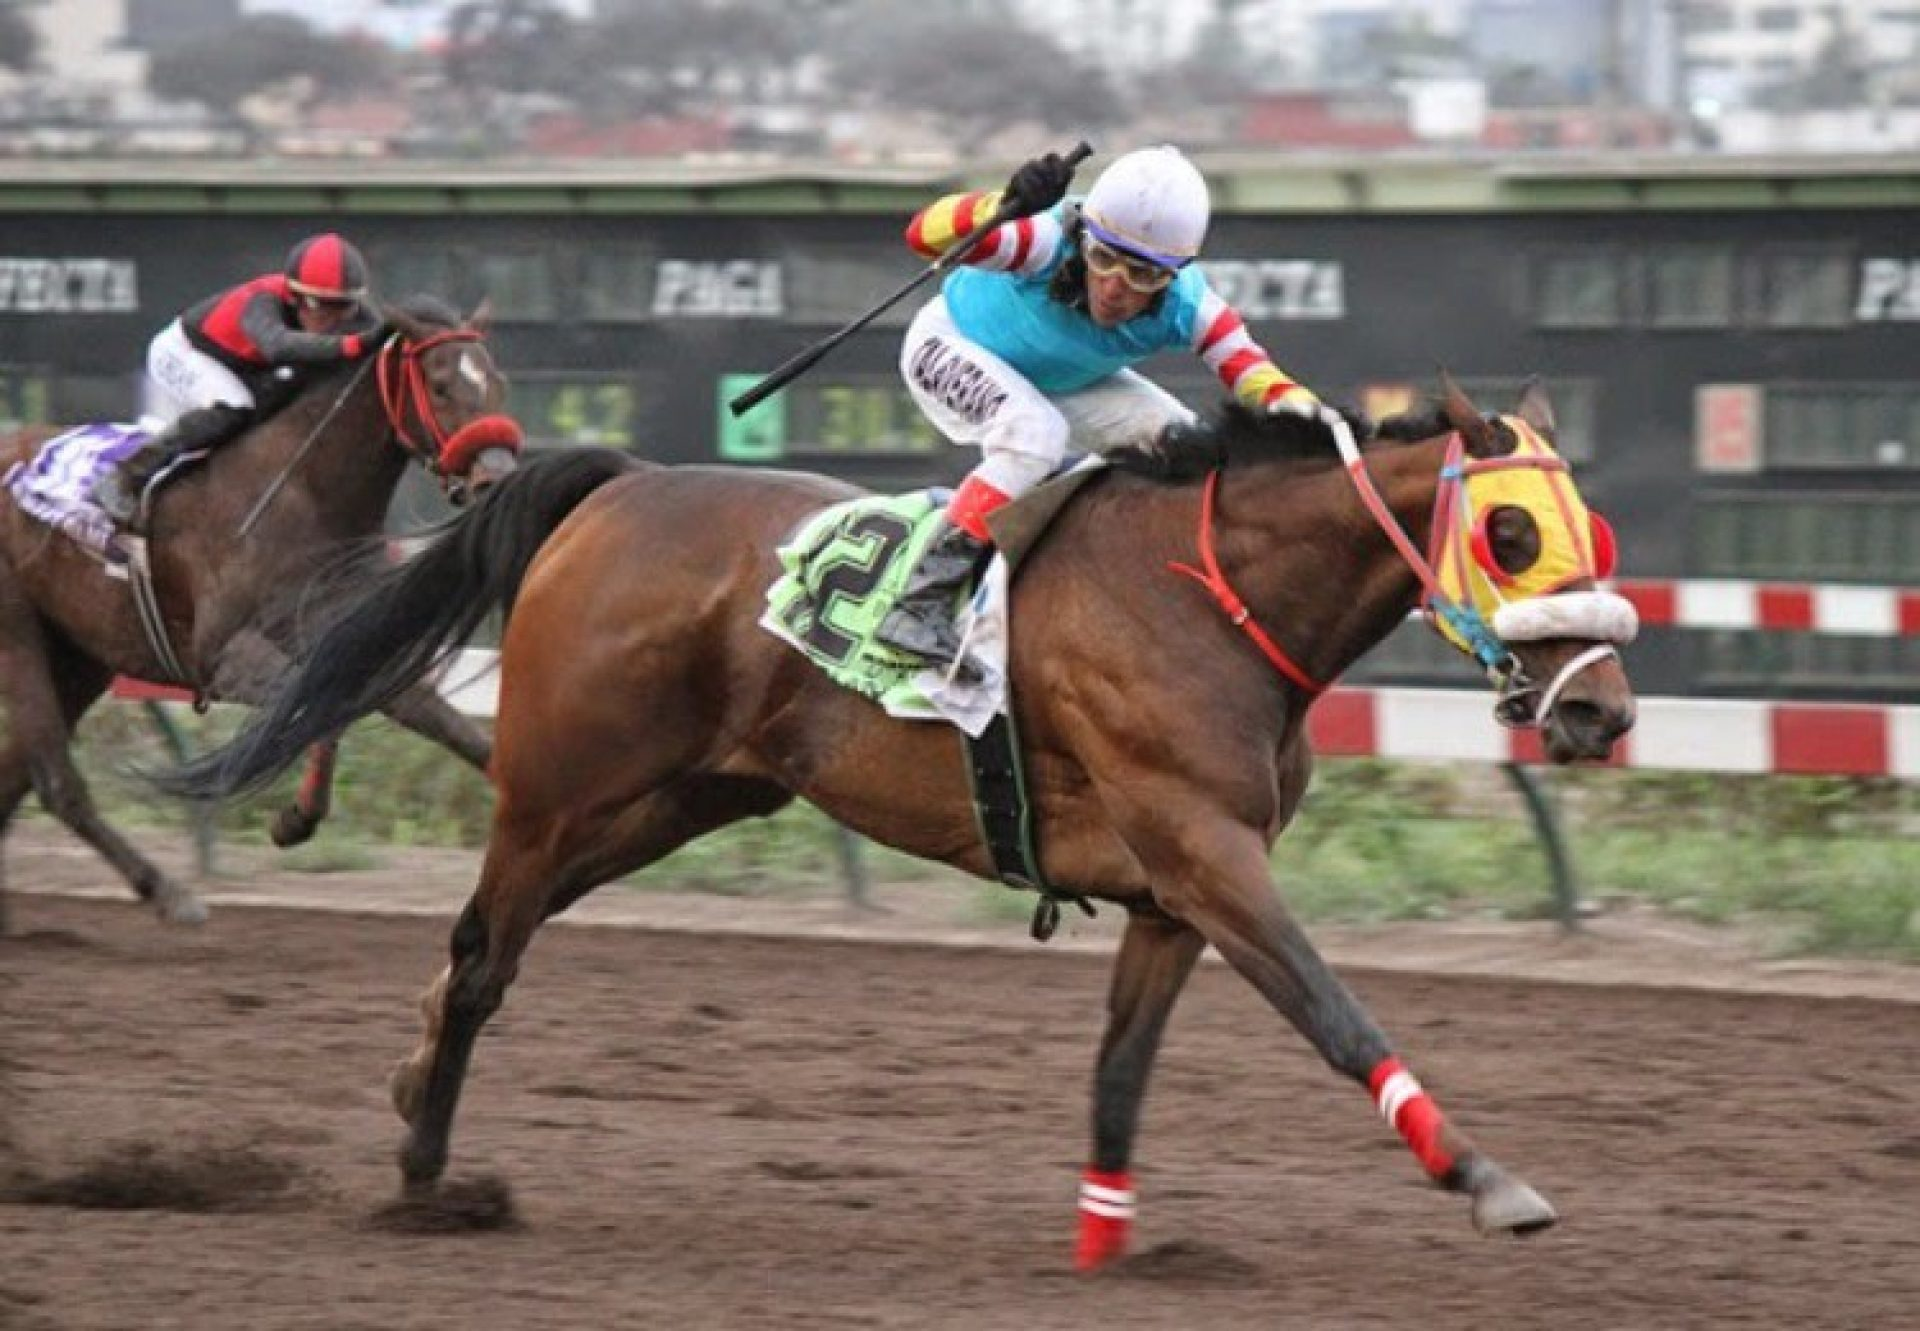 Sand Bijou (Footstepsinthesand) winning the Clasico Enrique Ayulo Pardo in Peru